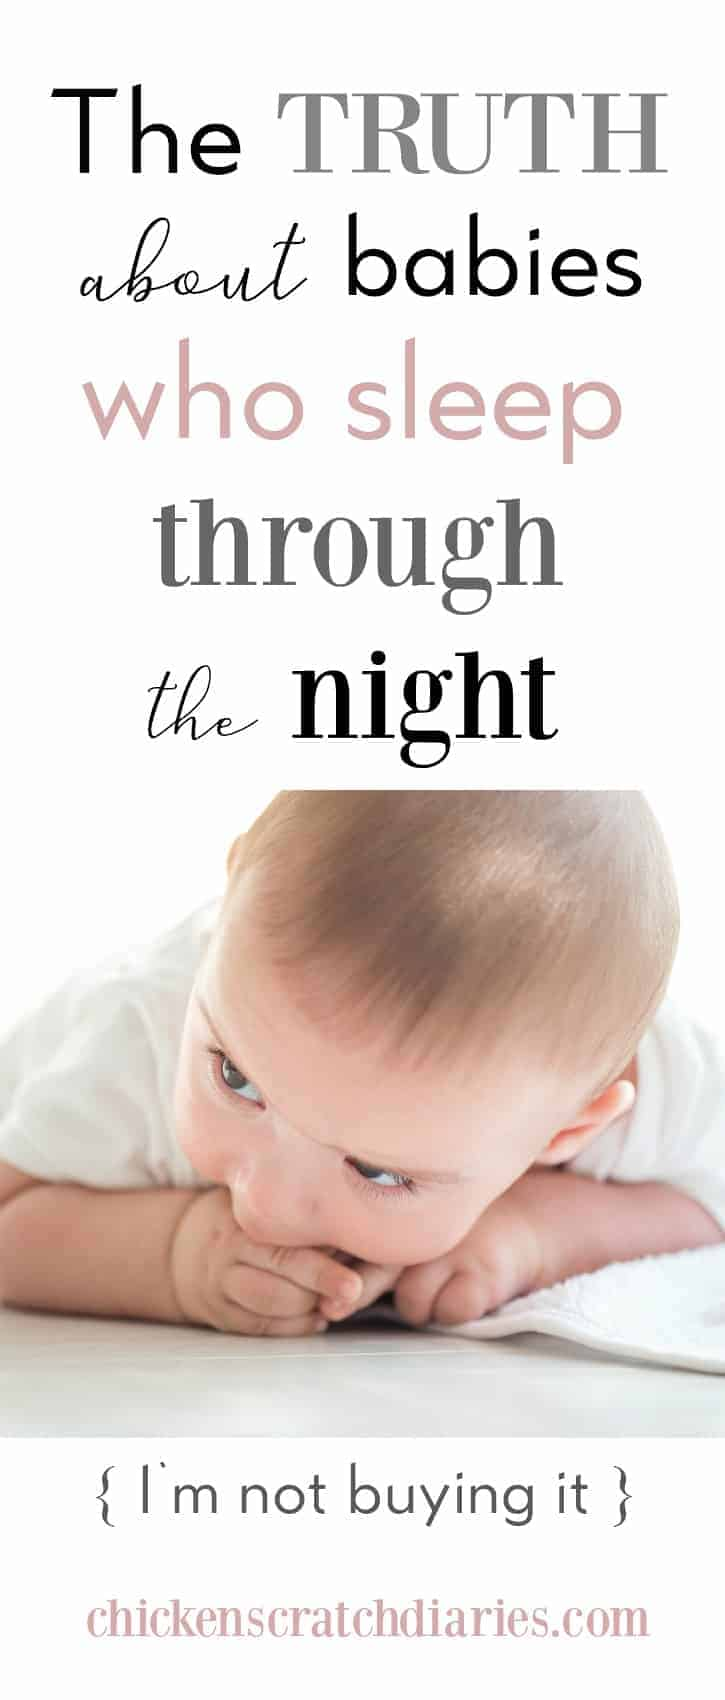 The Truth about Babies Who Sleep Throught the Night